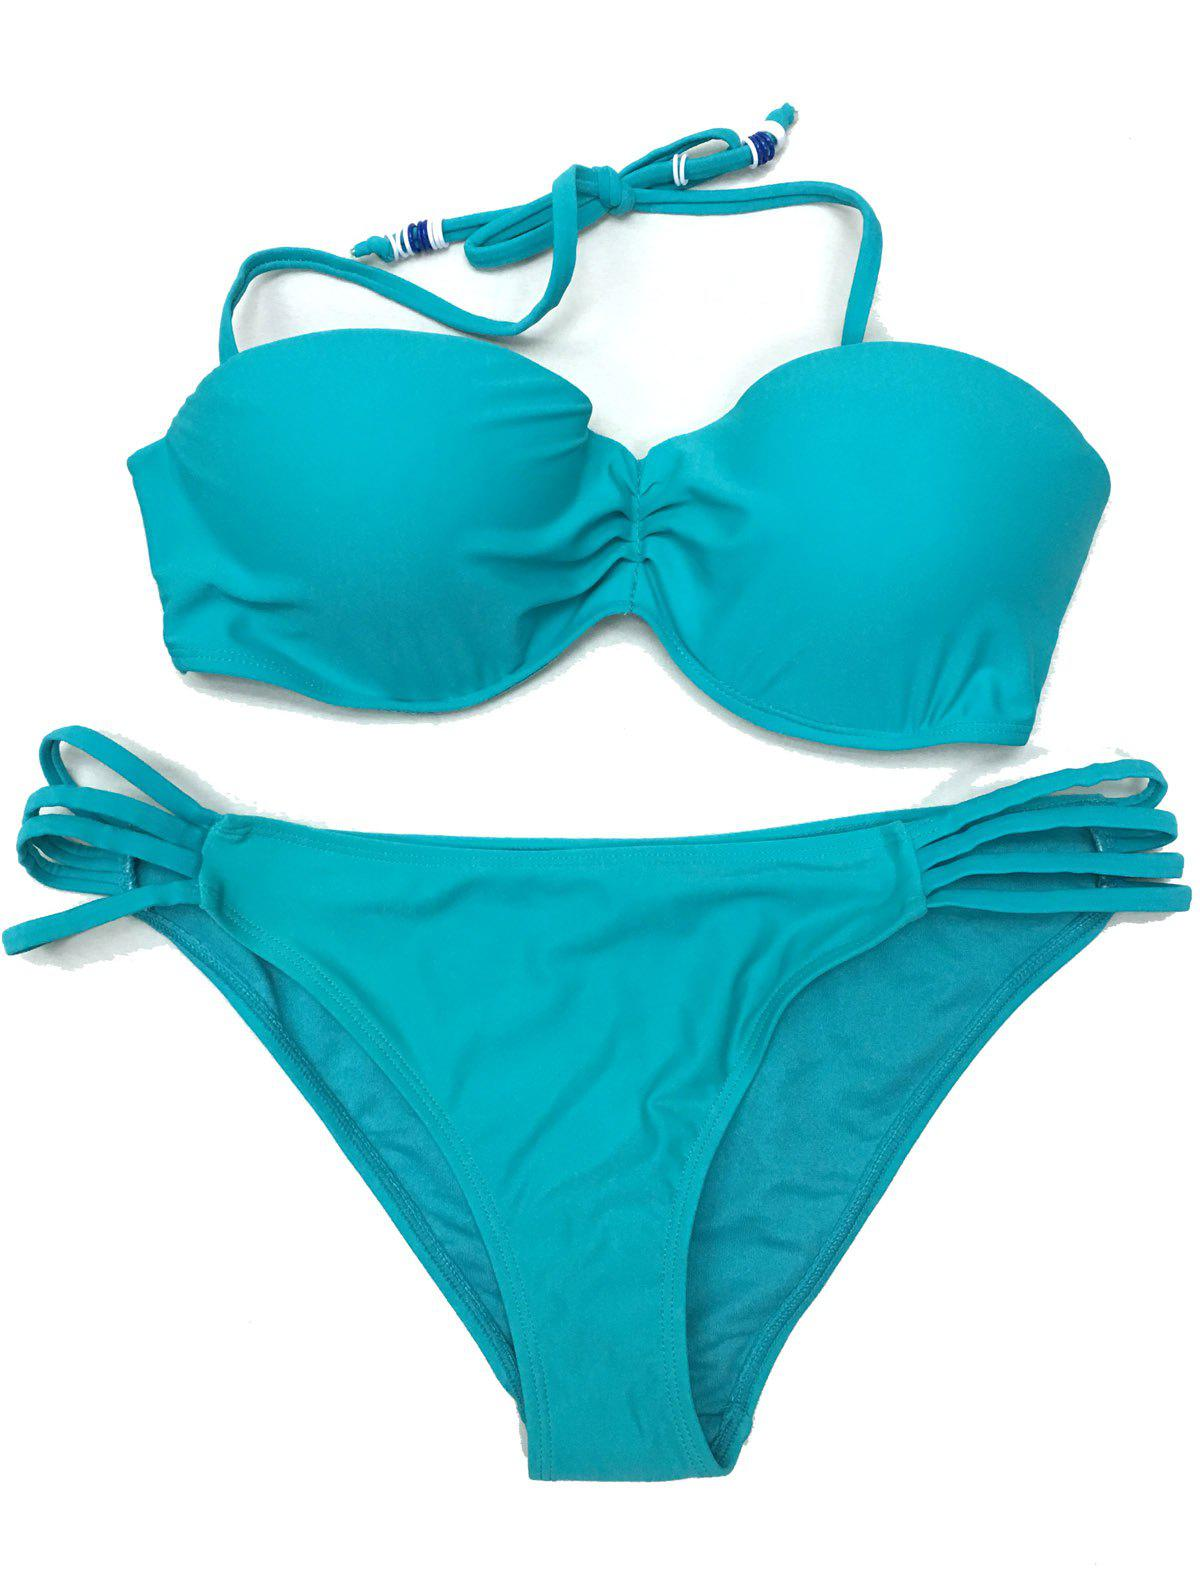 Stylish Solid Color Beads Embellished Halter Women's Bikini Set